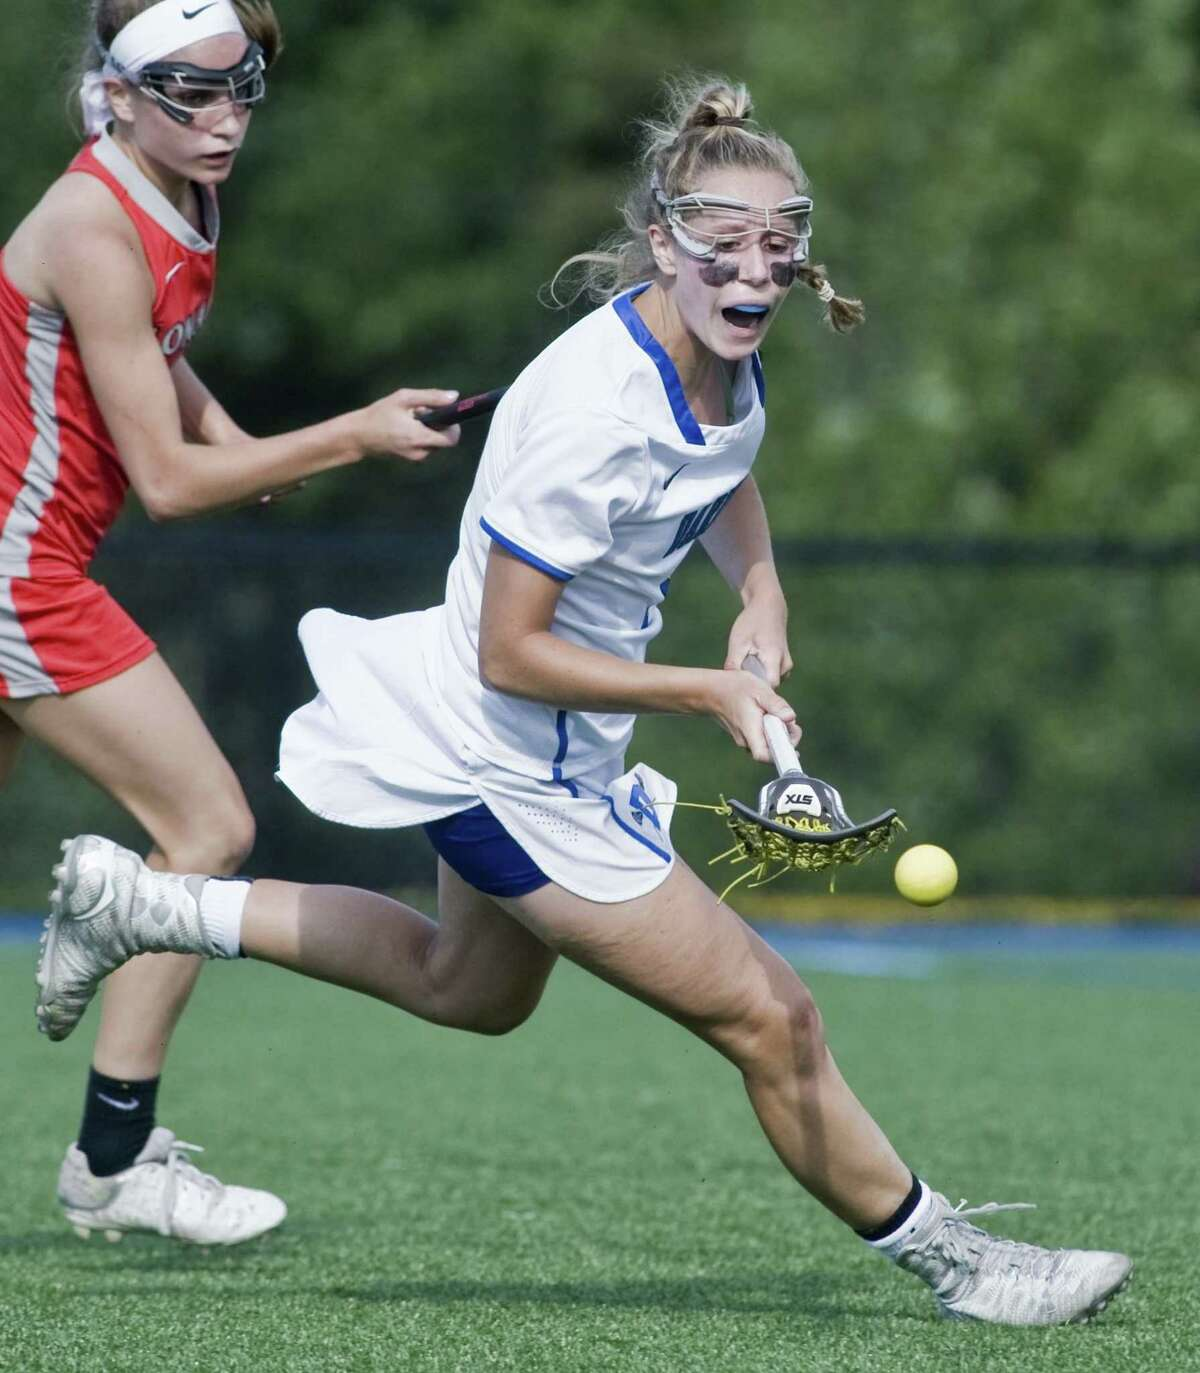 Darien High School's Emma Jaques chases a loose ball in the Class L girls lacrosse game against Conard High School, played at Darien. Thursday, June 1, 2017